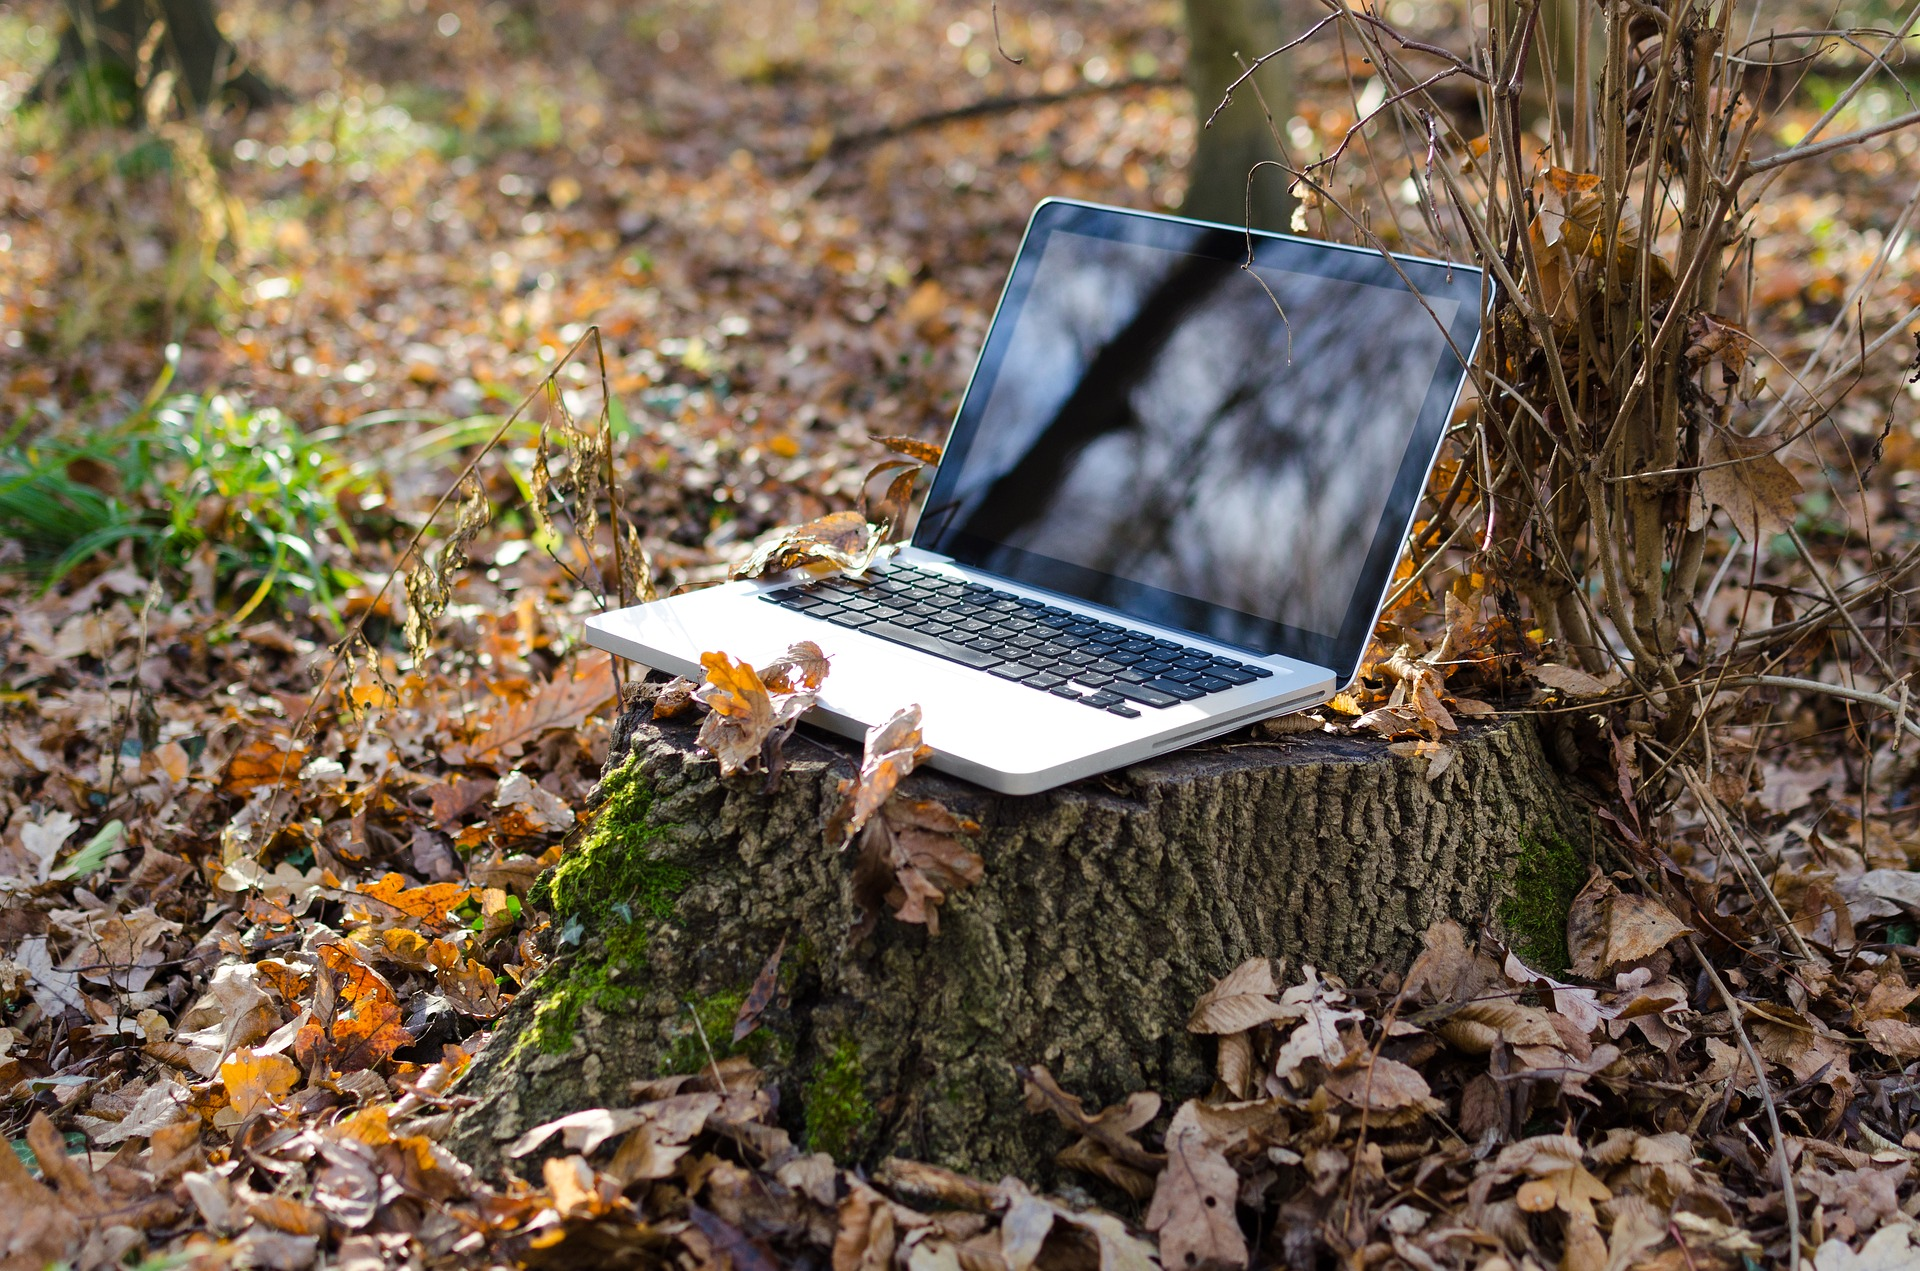 If a laptop falls in a forest, you're helping counter climate change!